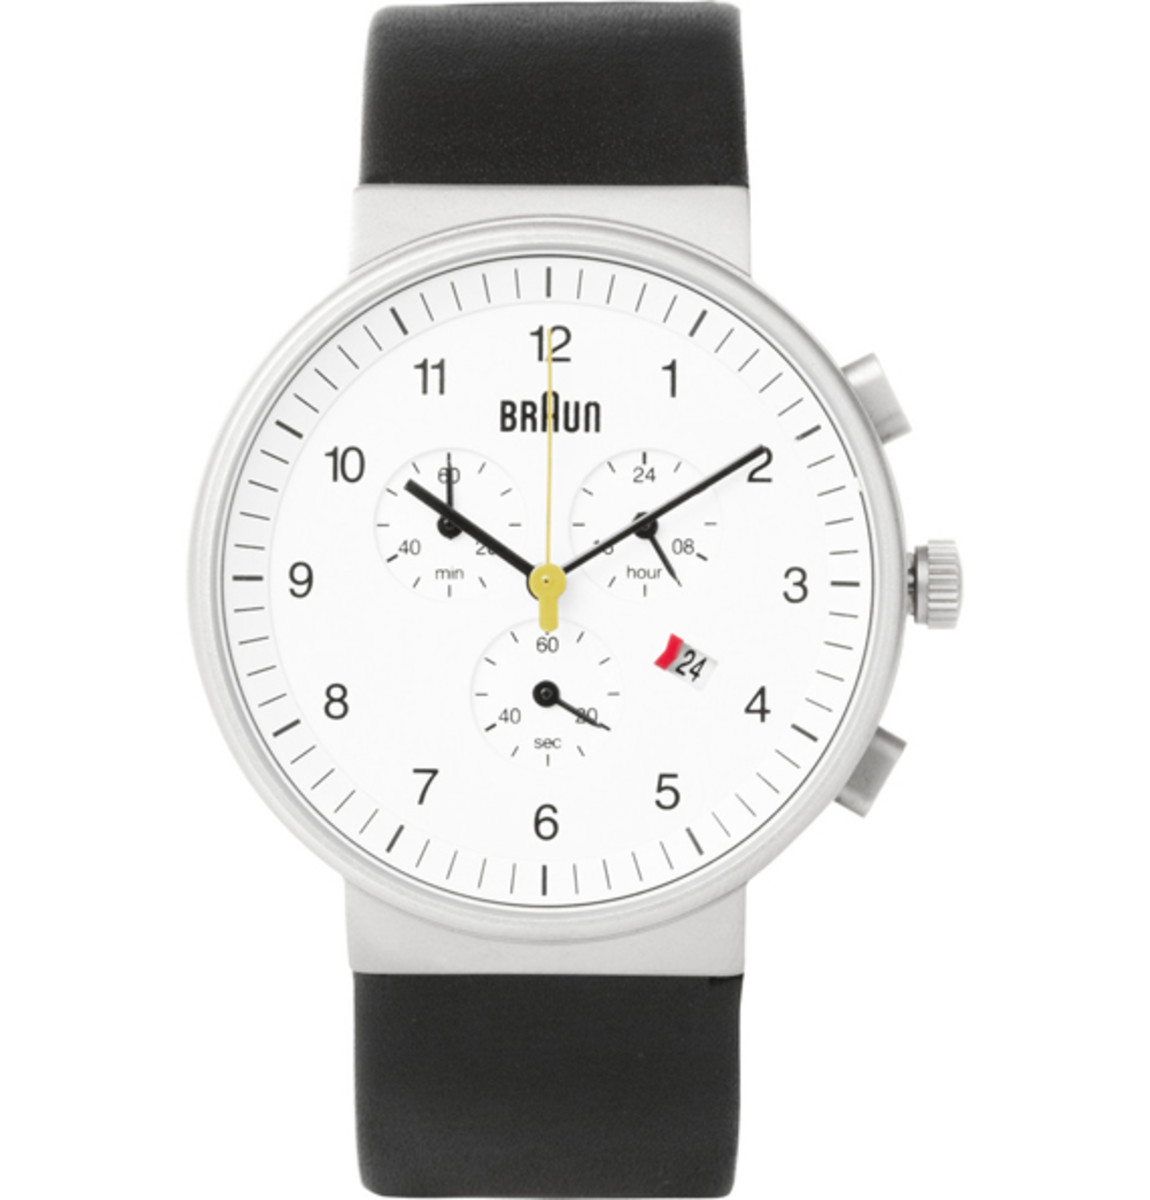 braun-watch-collection-by-dieter-rams-10